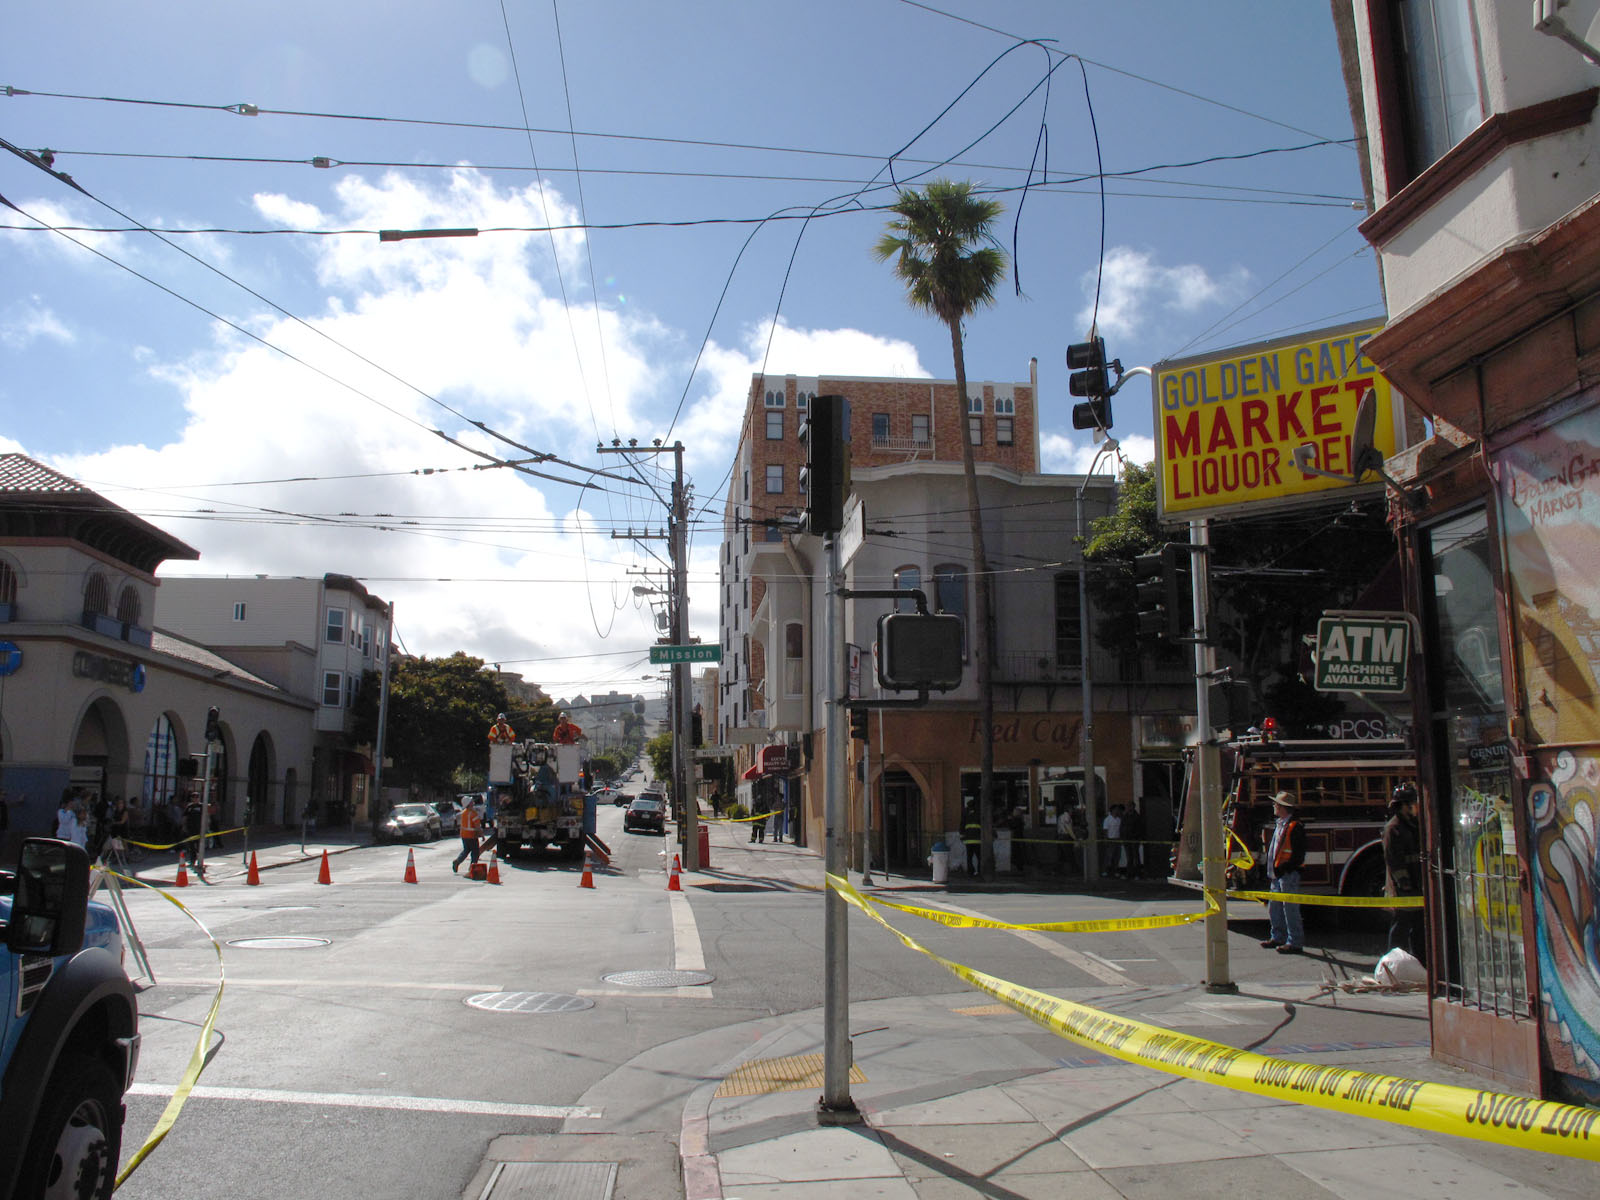 City officials closed the intersection of Mission Street and 25th Street after a cluster of balloons caused power lines to break above Golden Gate Market. Photo by Gregory Thomas